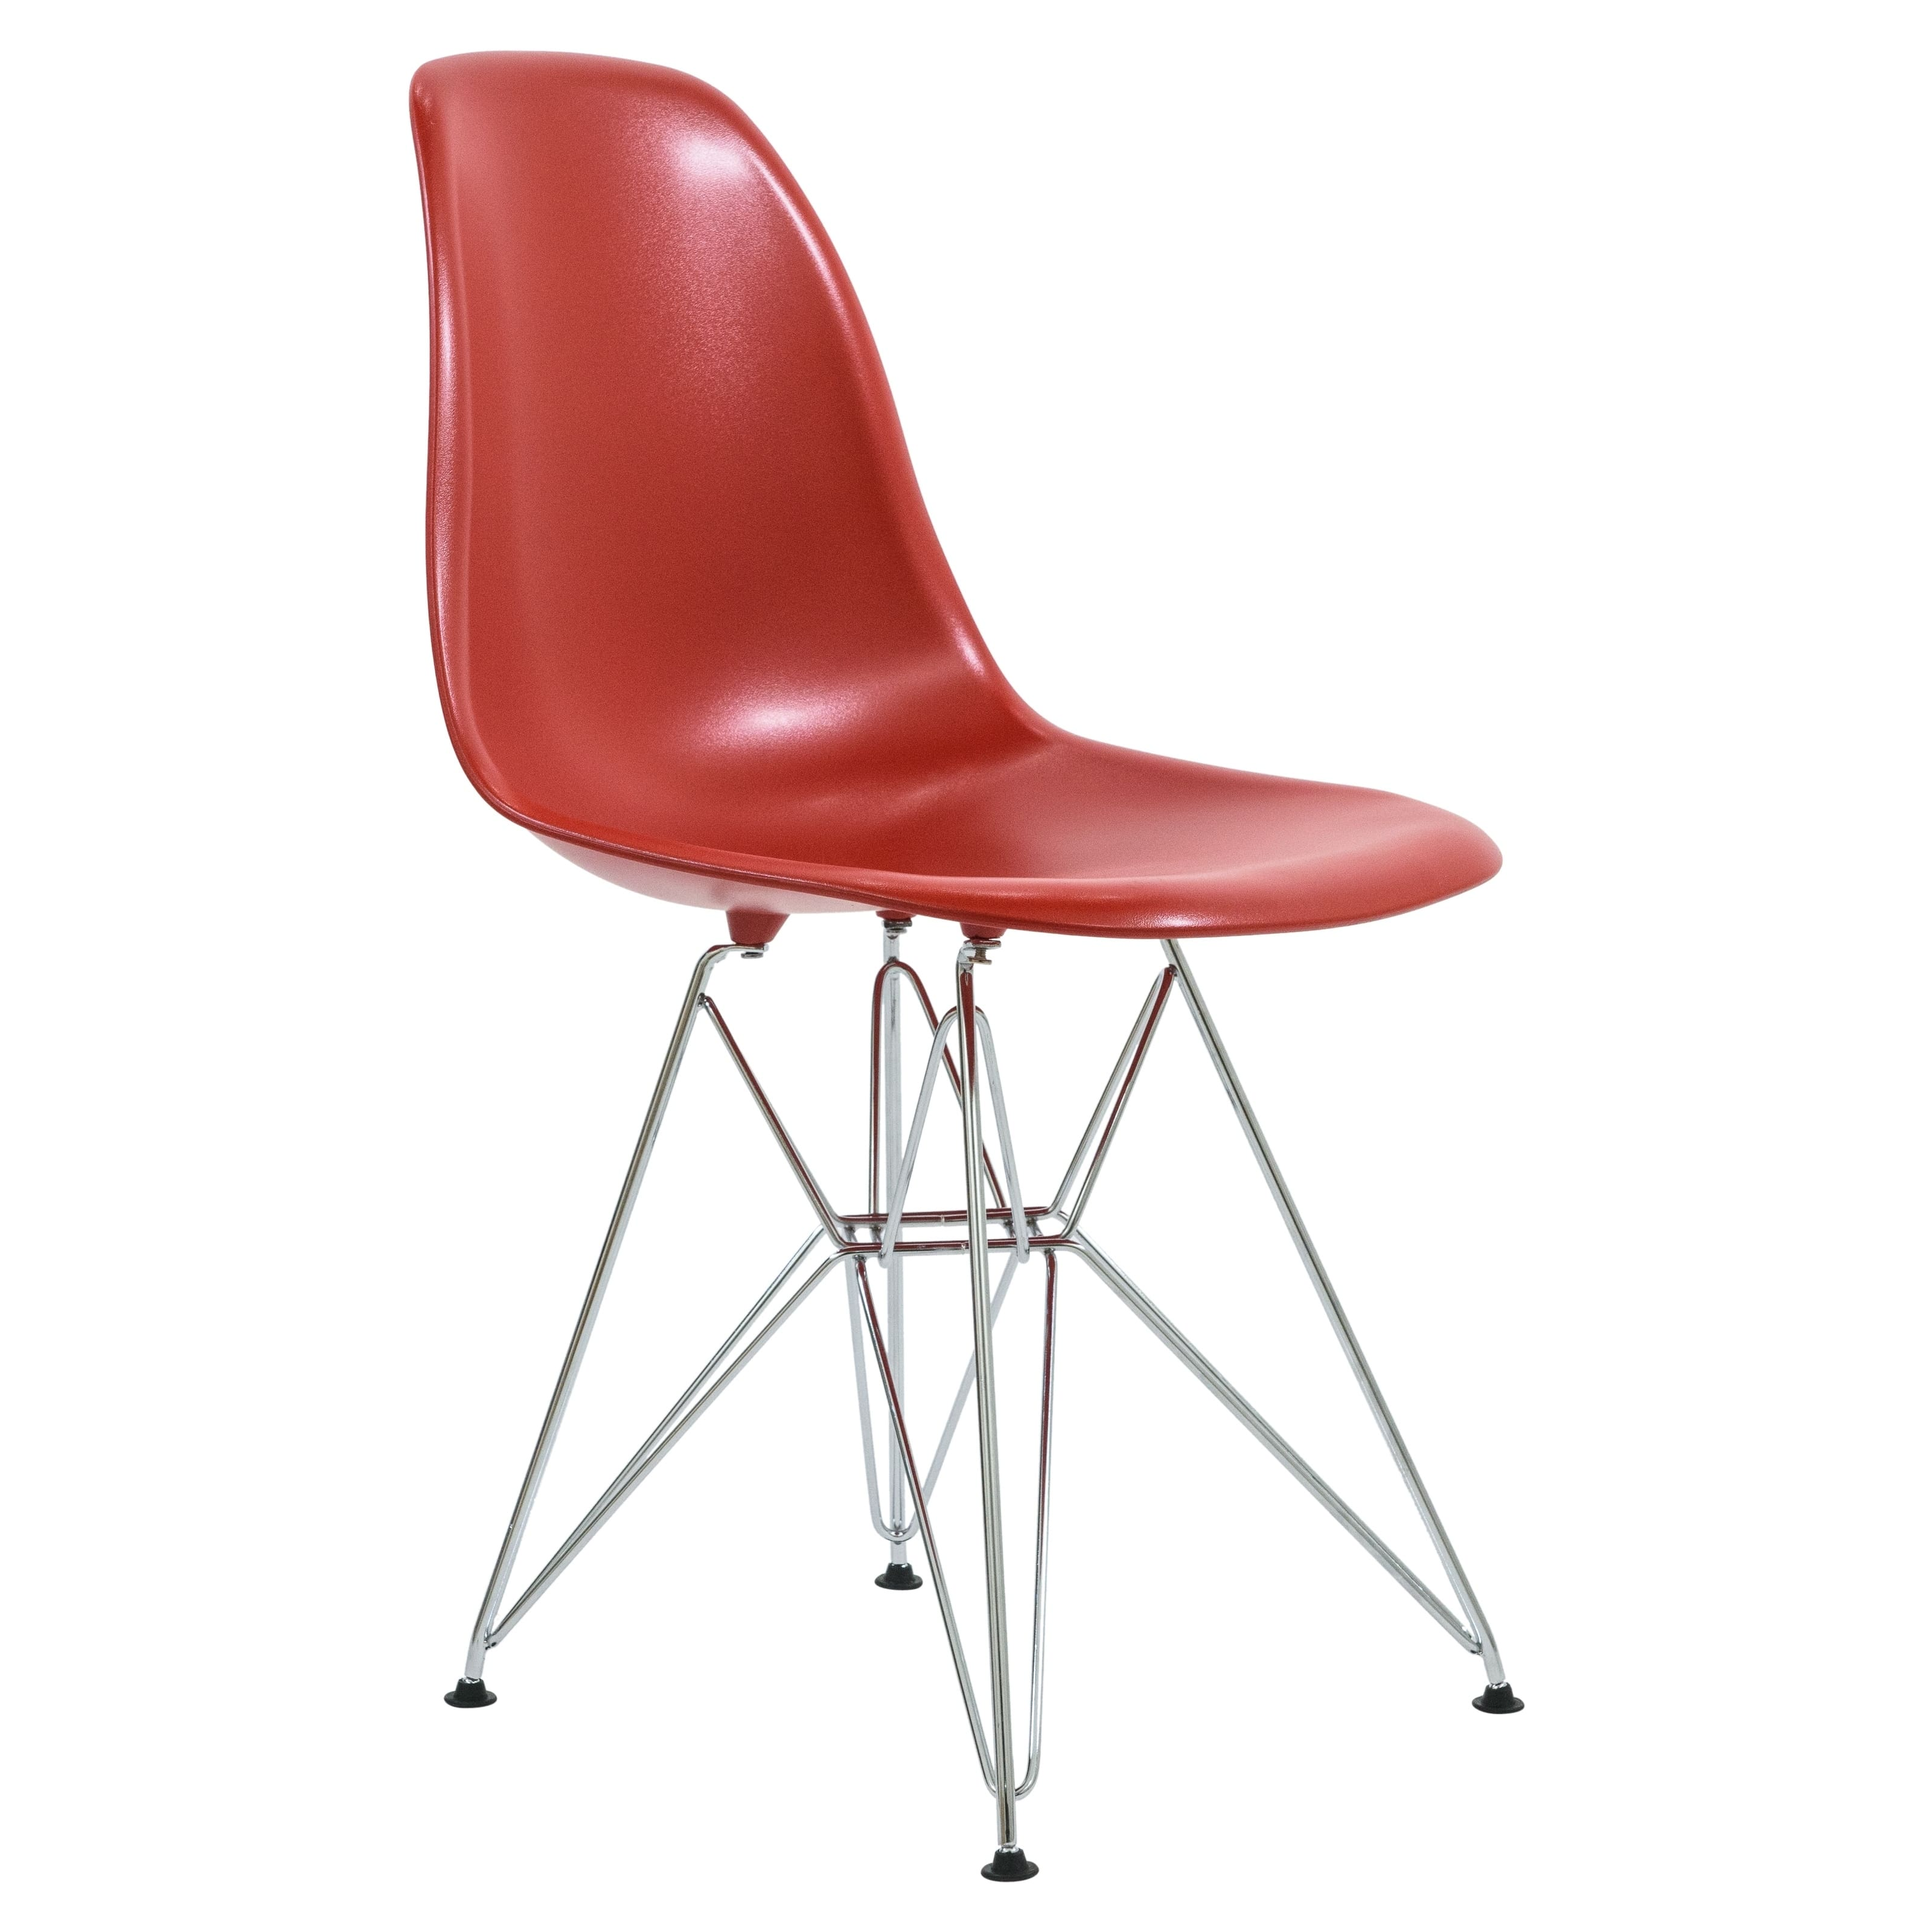 Best Place To Buy Dining Room Furniture: Buy Kitchen & Dining Room Chairs Online At Overstock.com